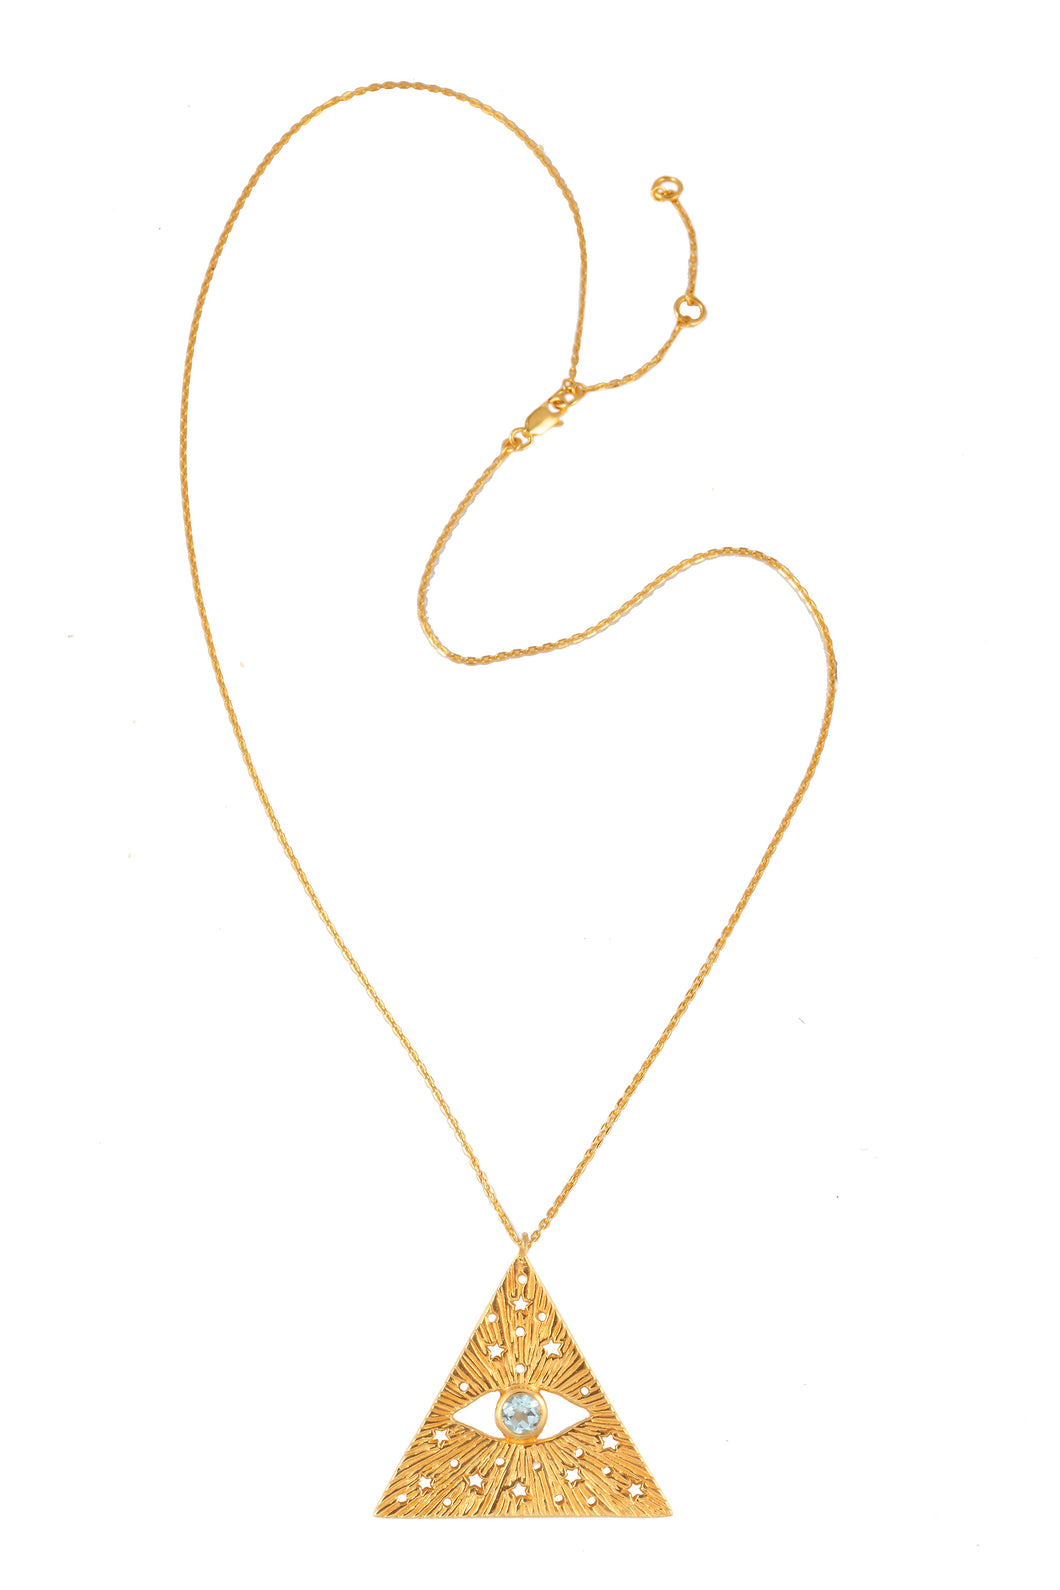 All-seen-eye necklace. Gold plated.